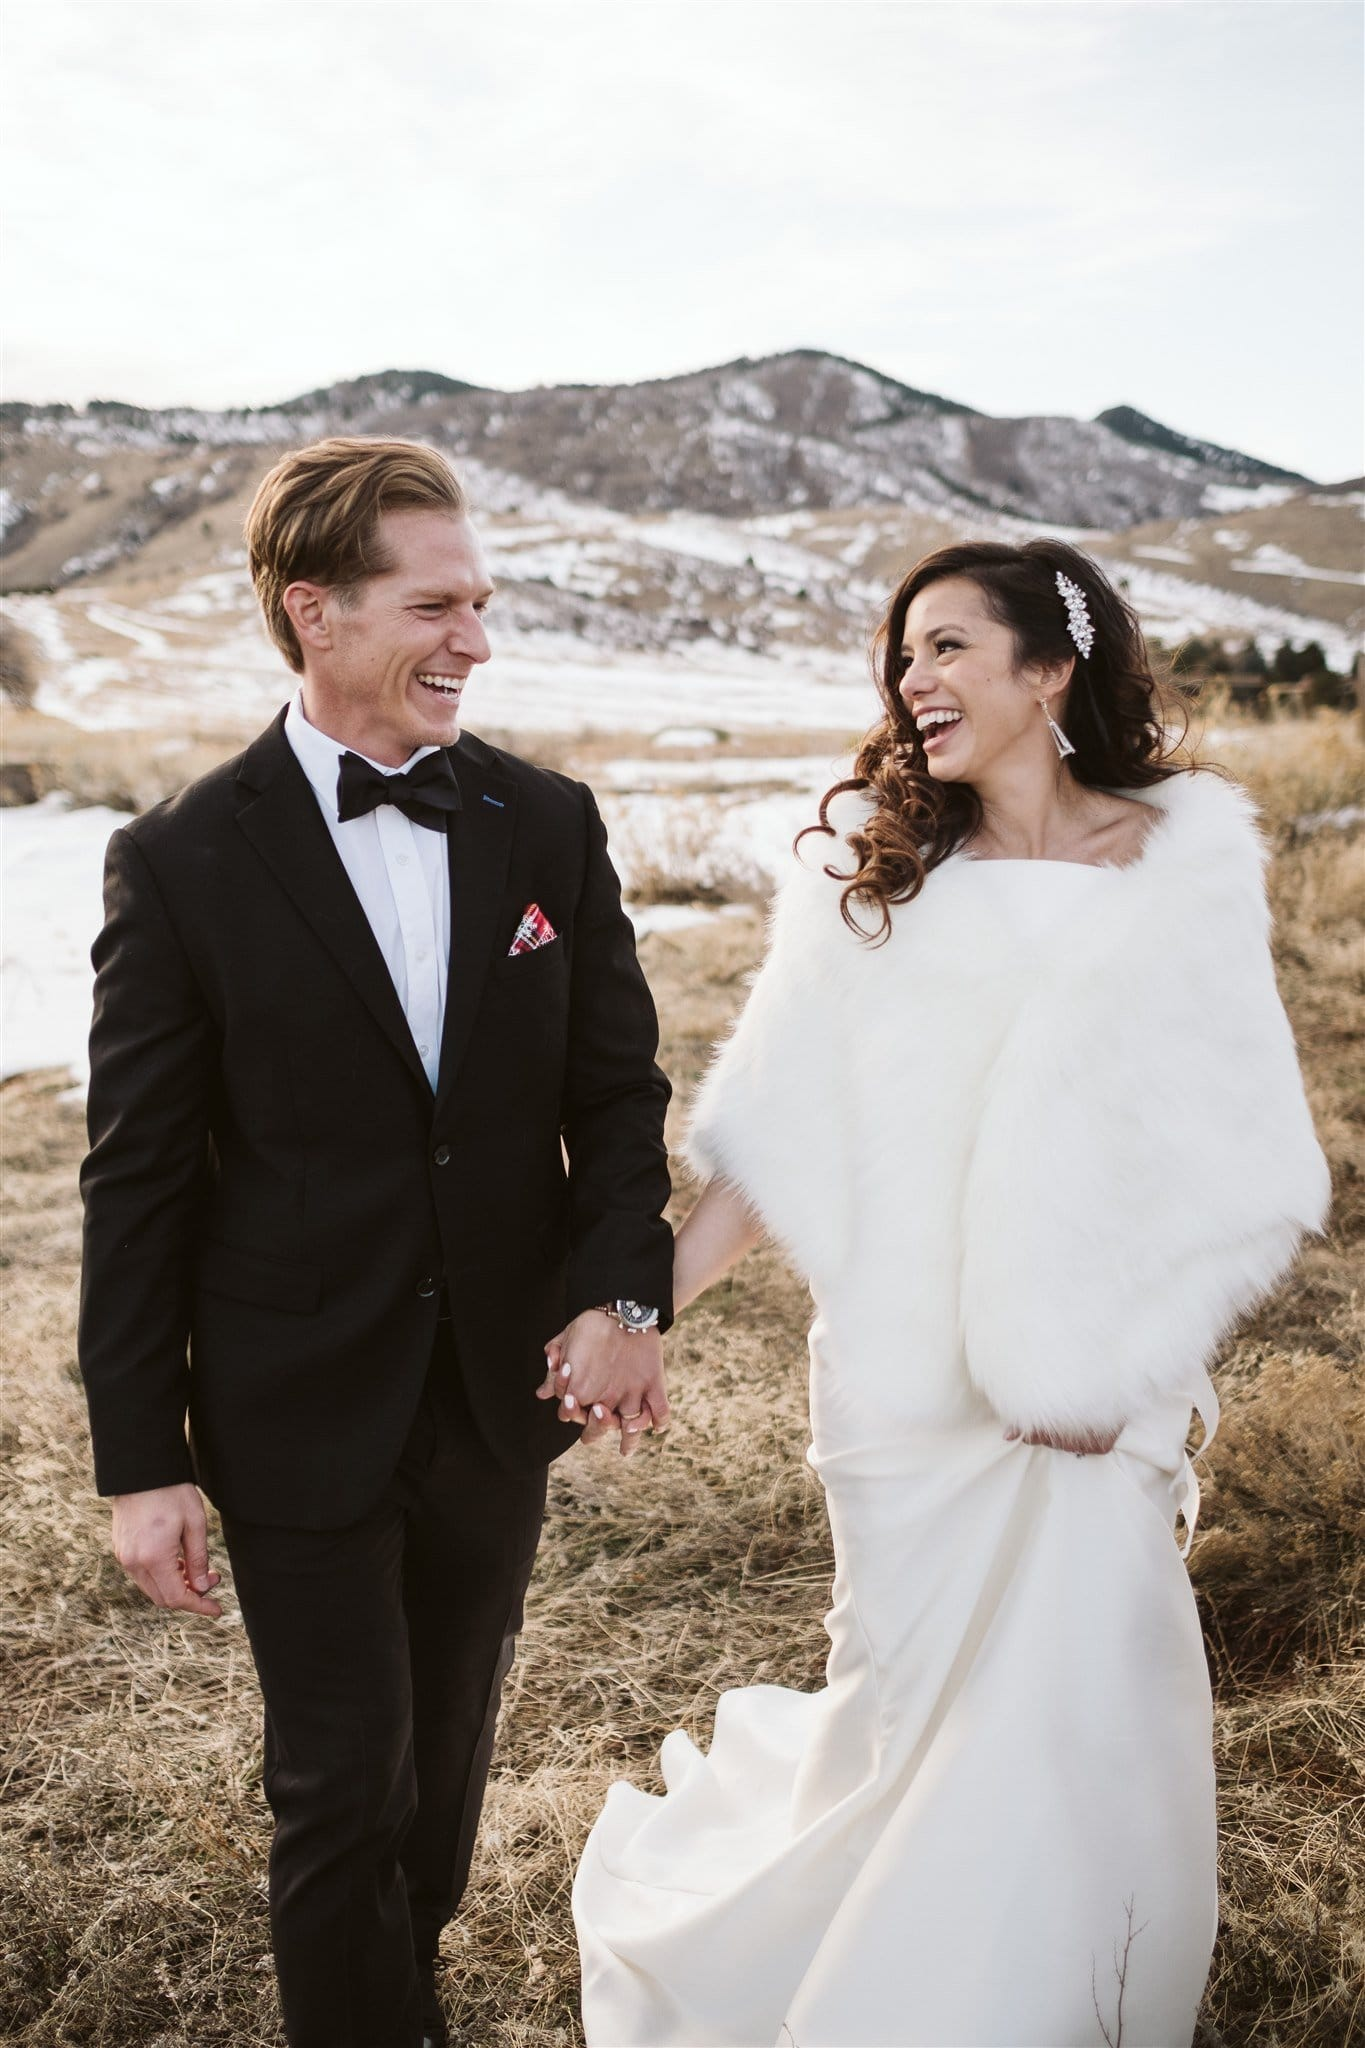 Bride and groom at winter wedding in Colorado